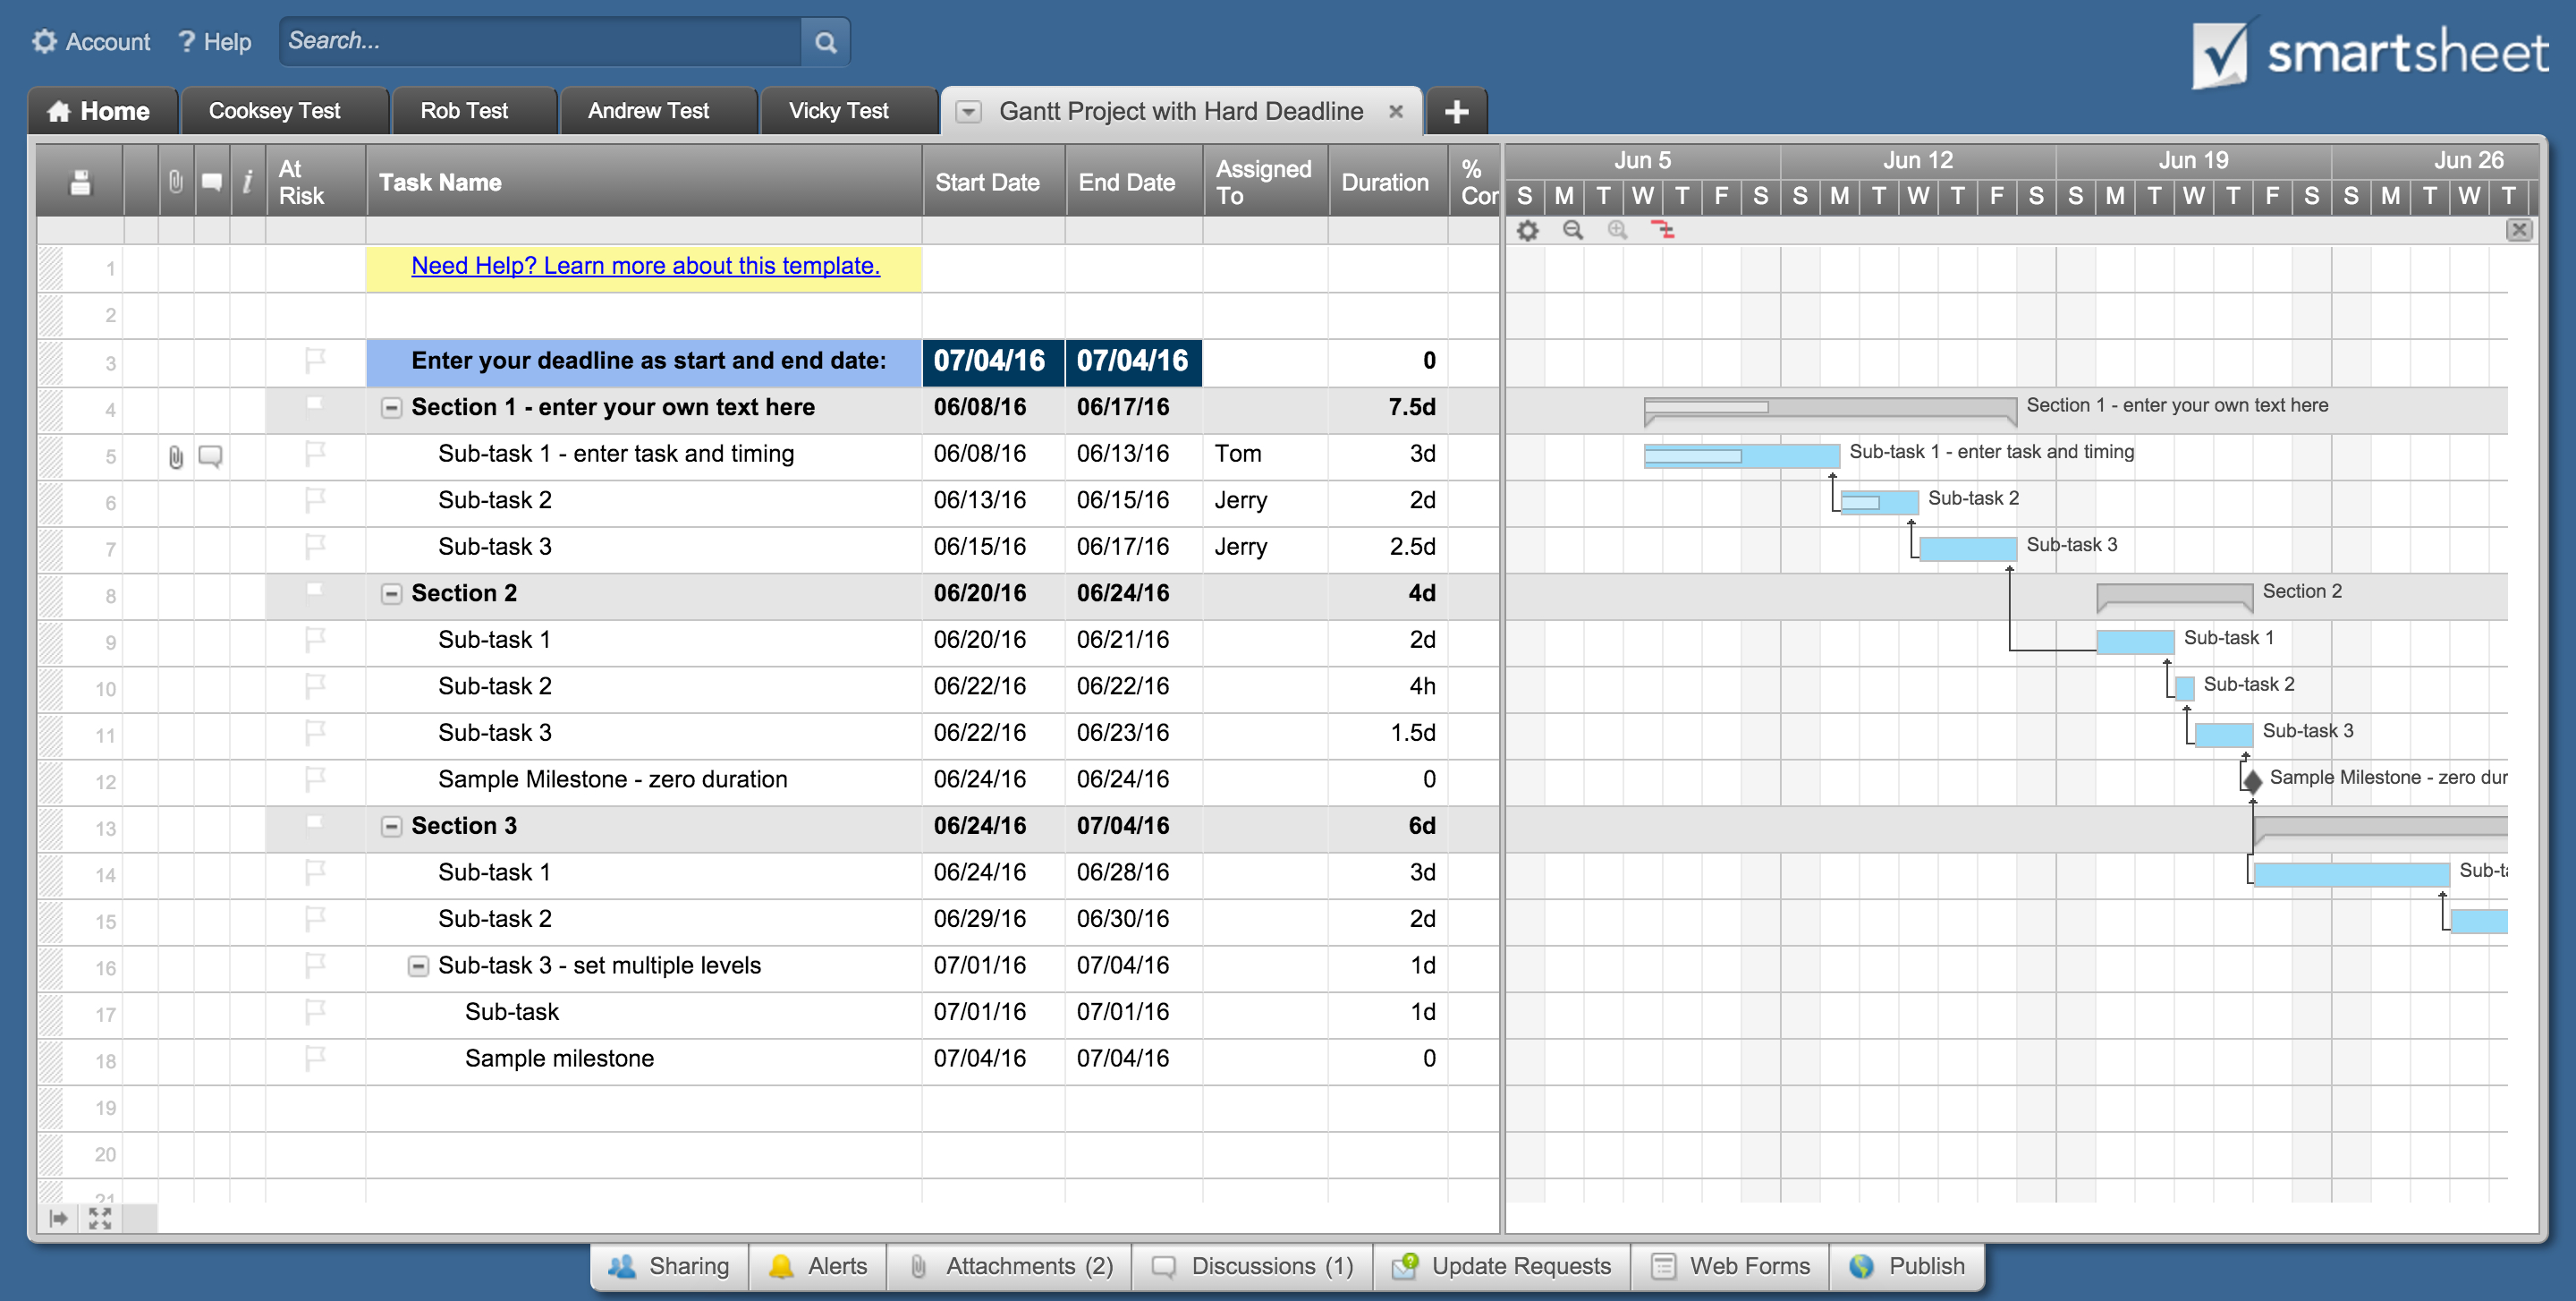 Spreadsheet Smartsheet Throughout From Visicalc To Google Sheets: The 12 Best Spreadsheet Apps